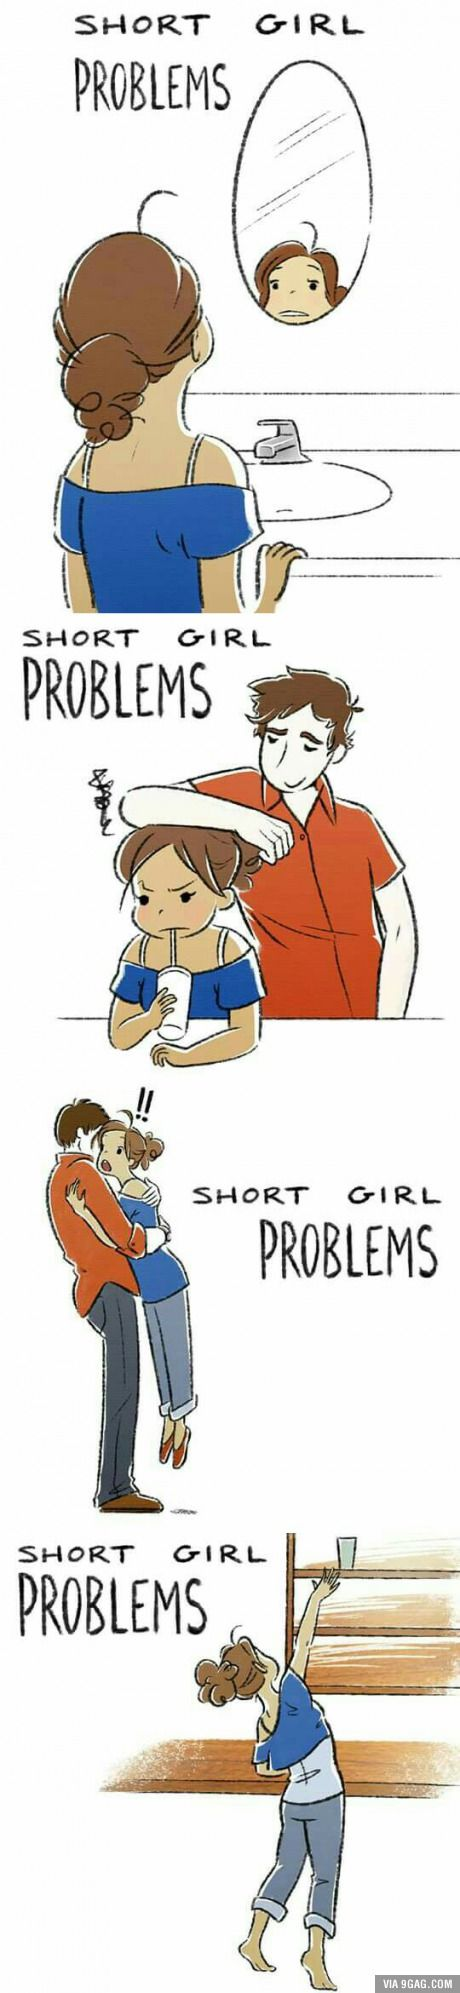 Short girl Problems. It's so true! But there also so many positives to being short!